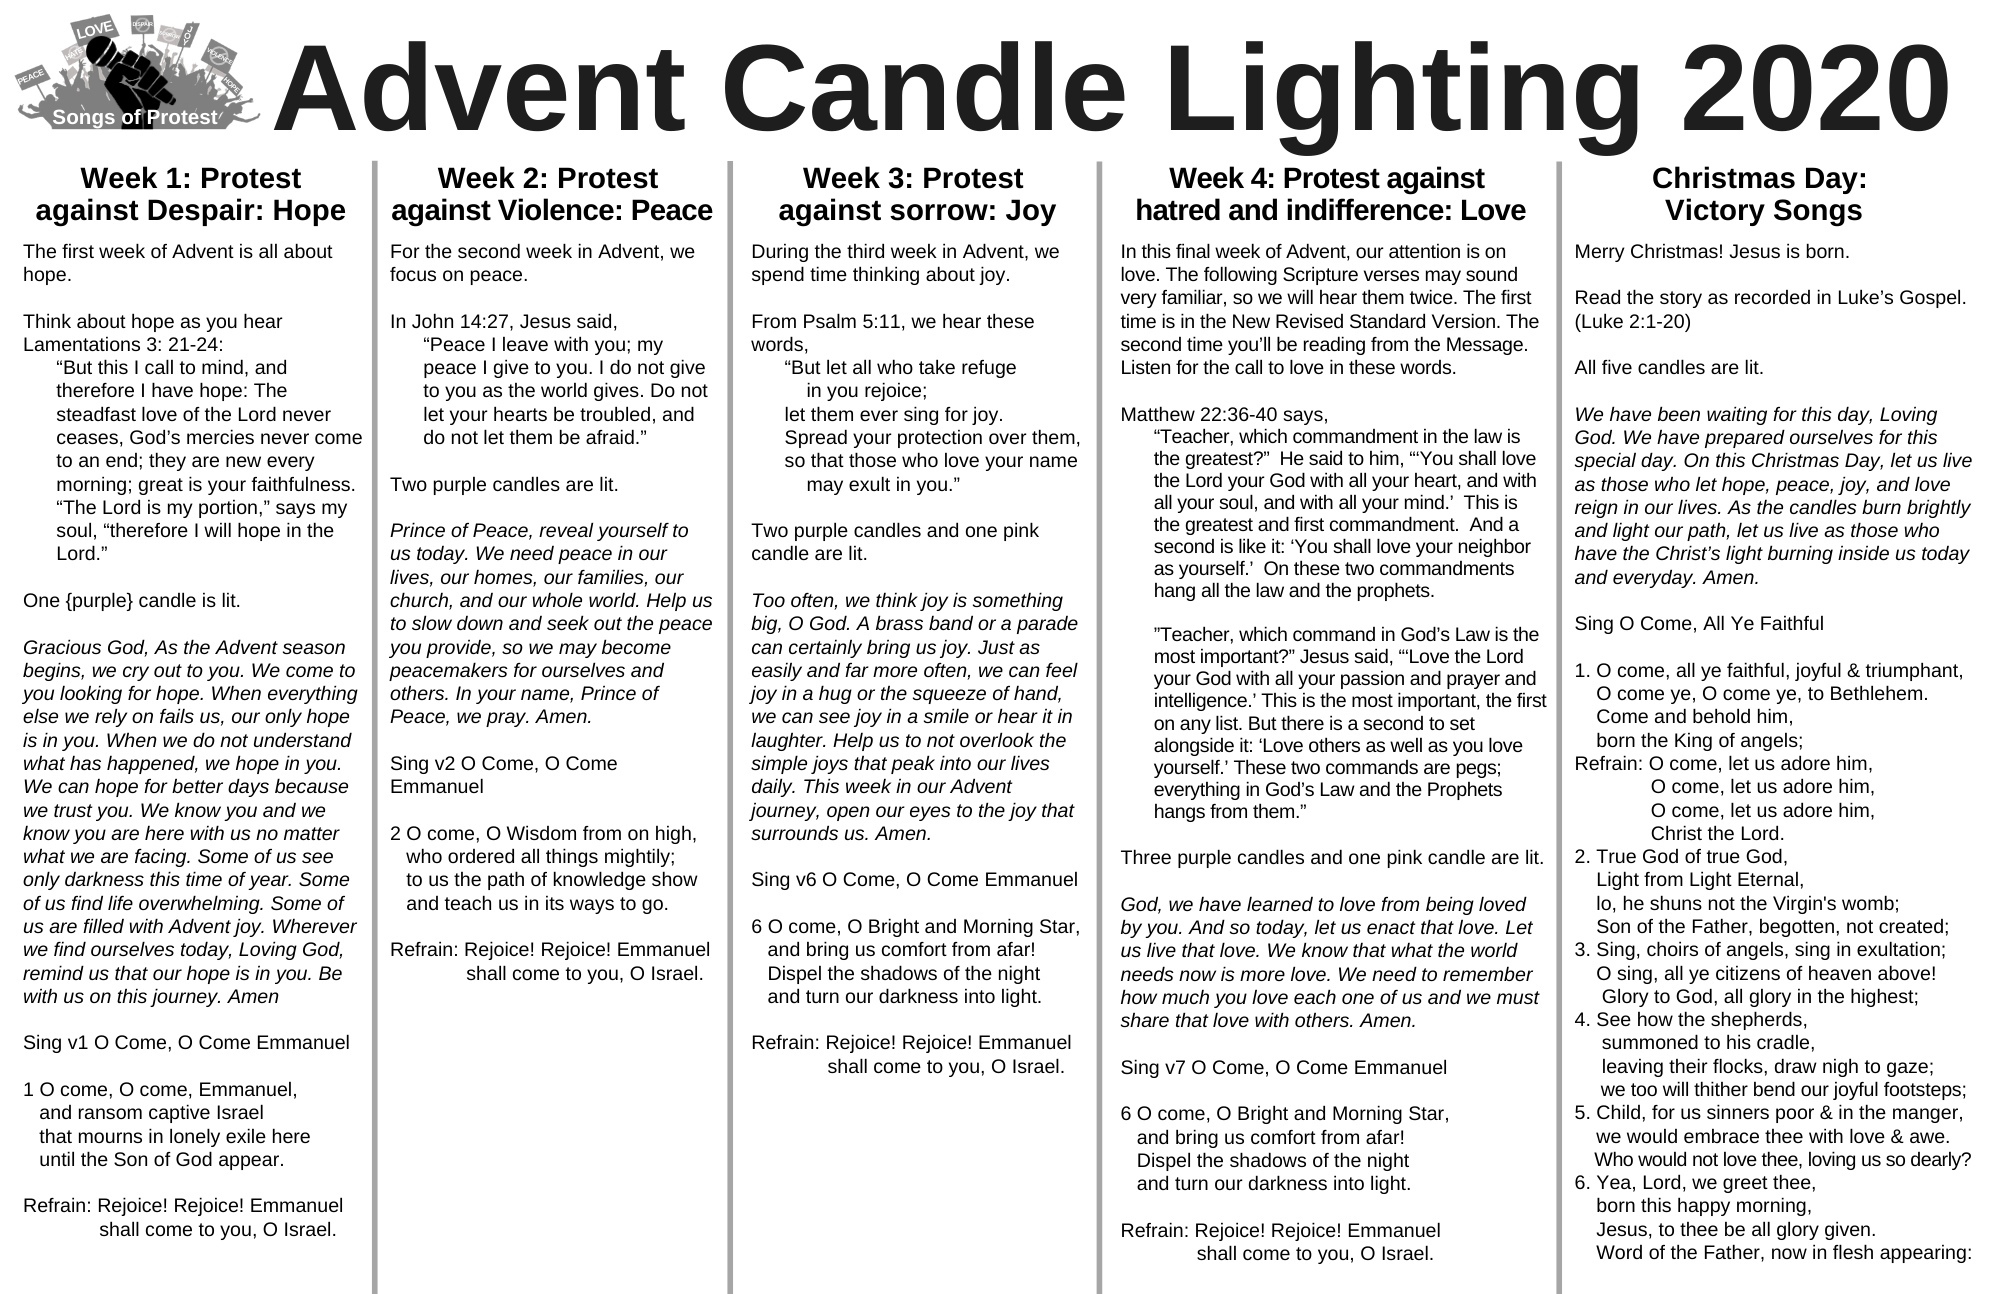 Advent Candle Lighting 2020